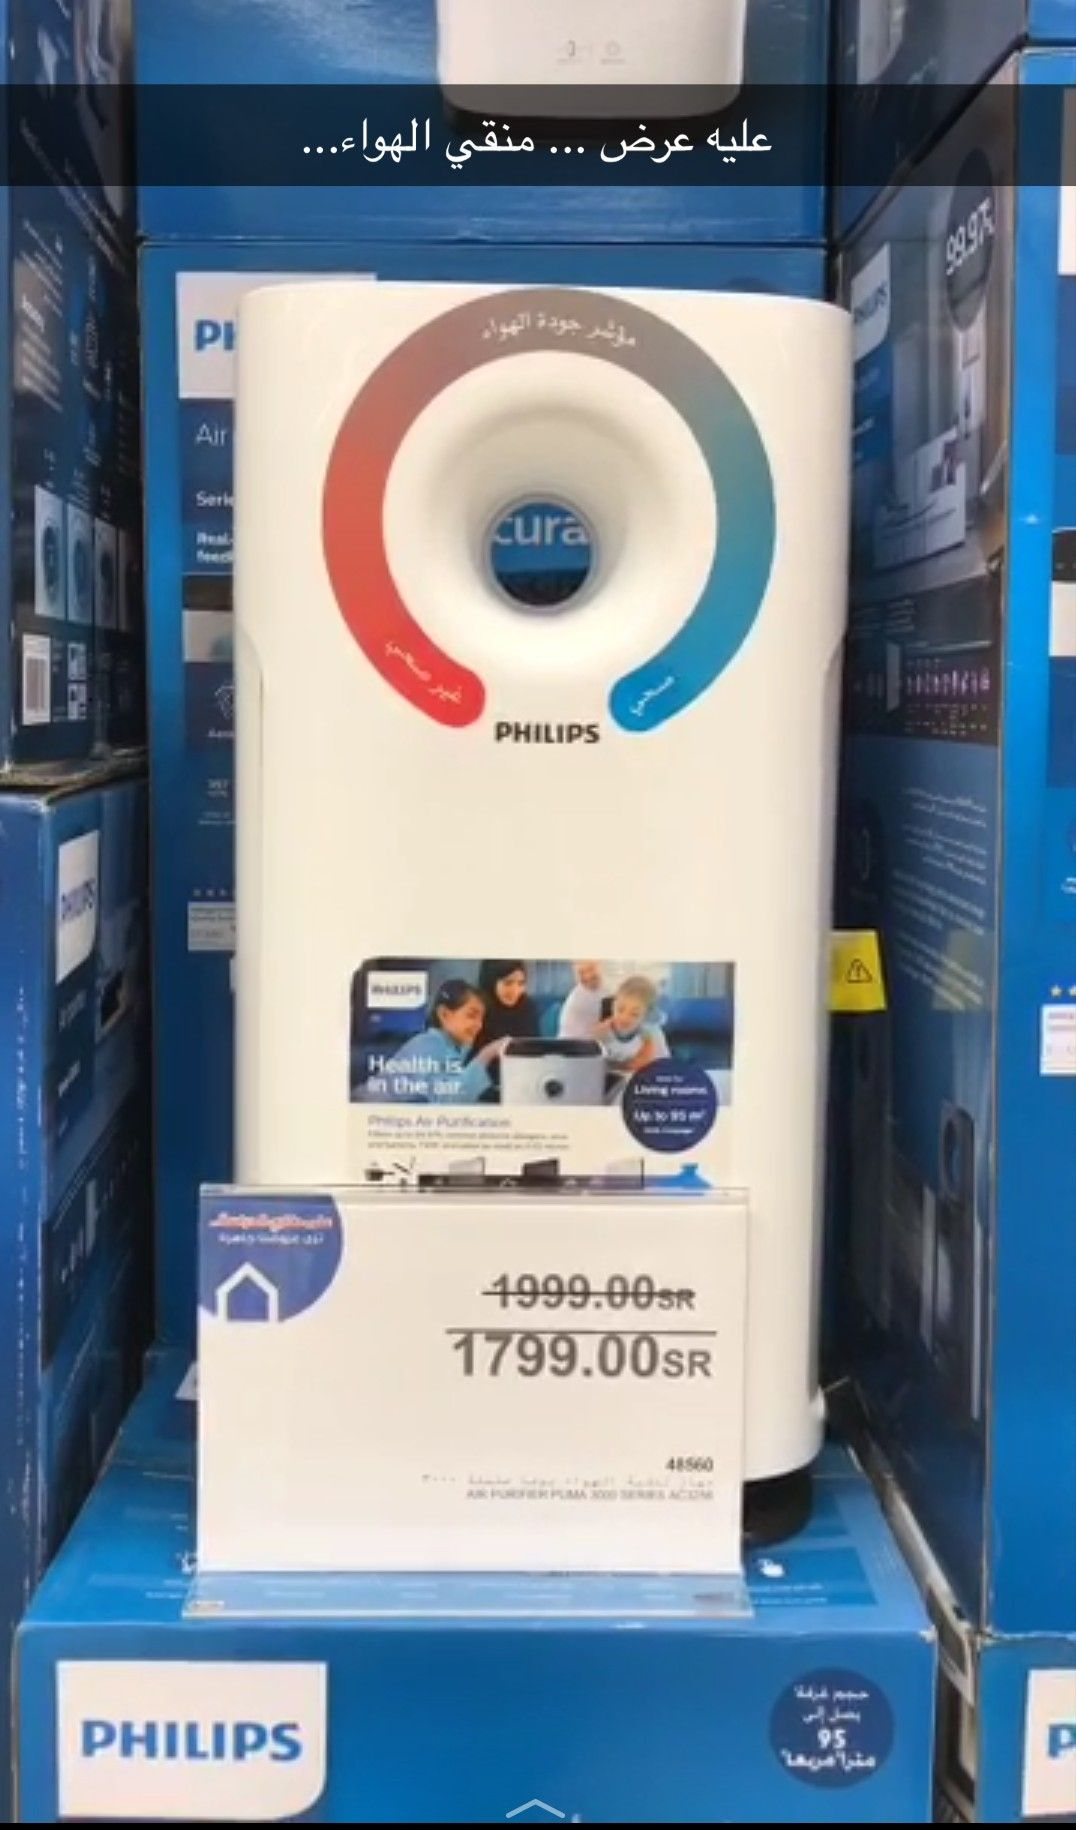 Pin By Mm On عامه Electronic Products Philips Health